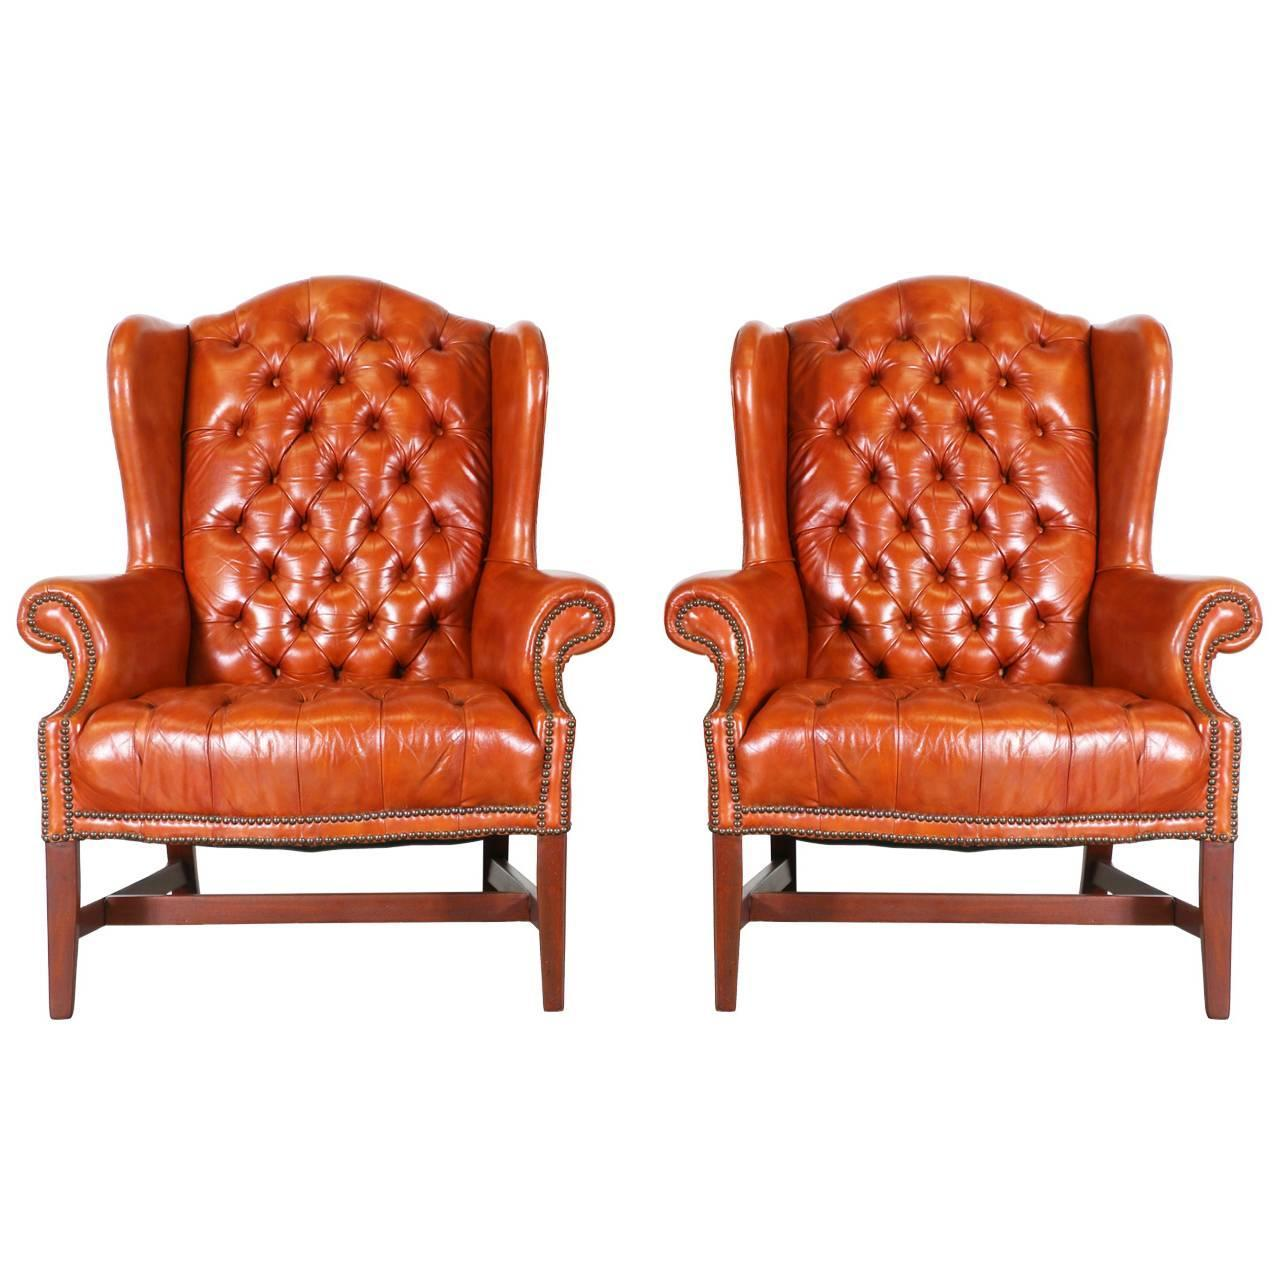 Pair Of Chesterfield Leather High Back Chairs For Sale At 1stdibs